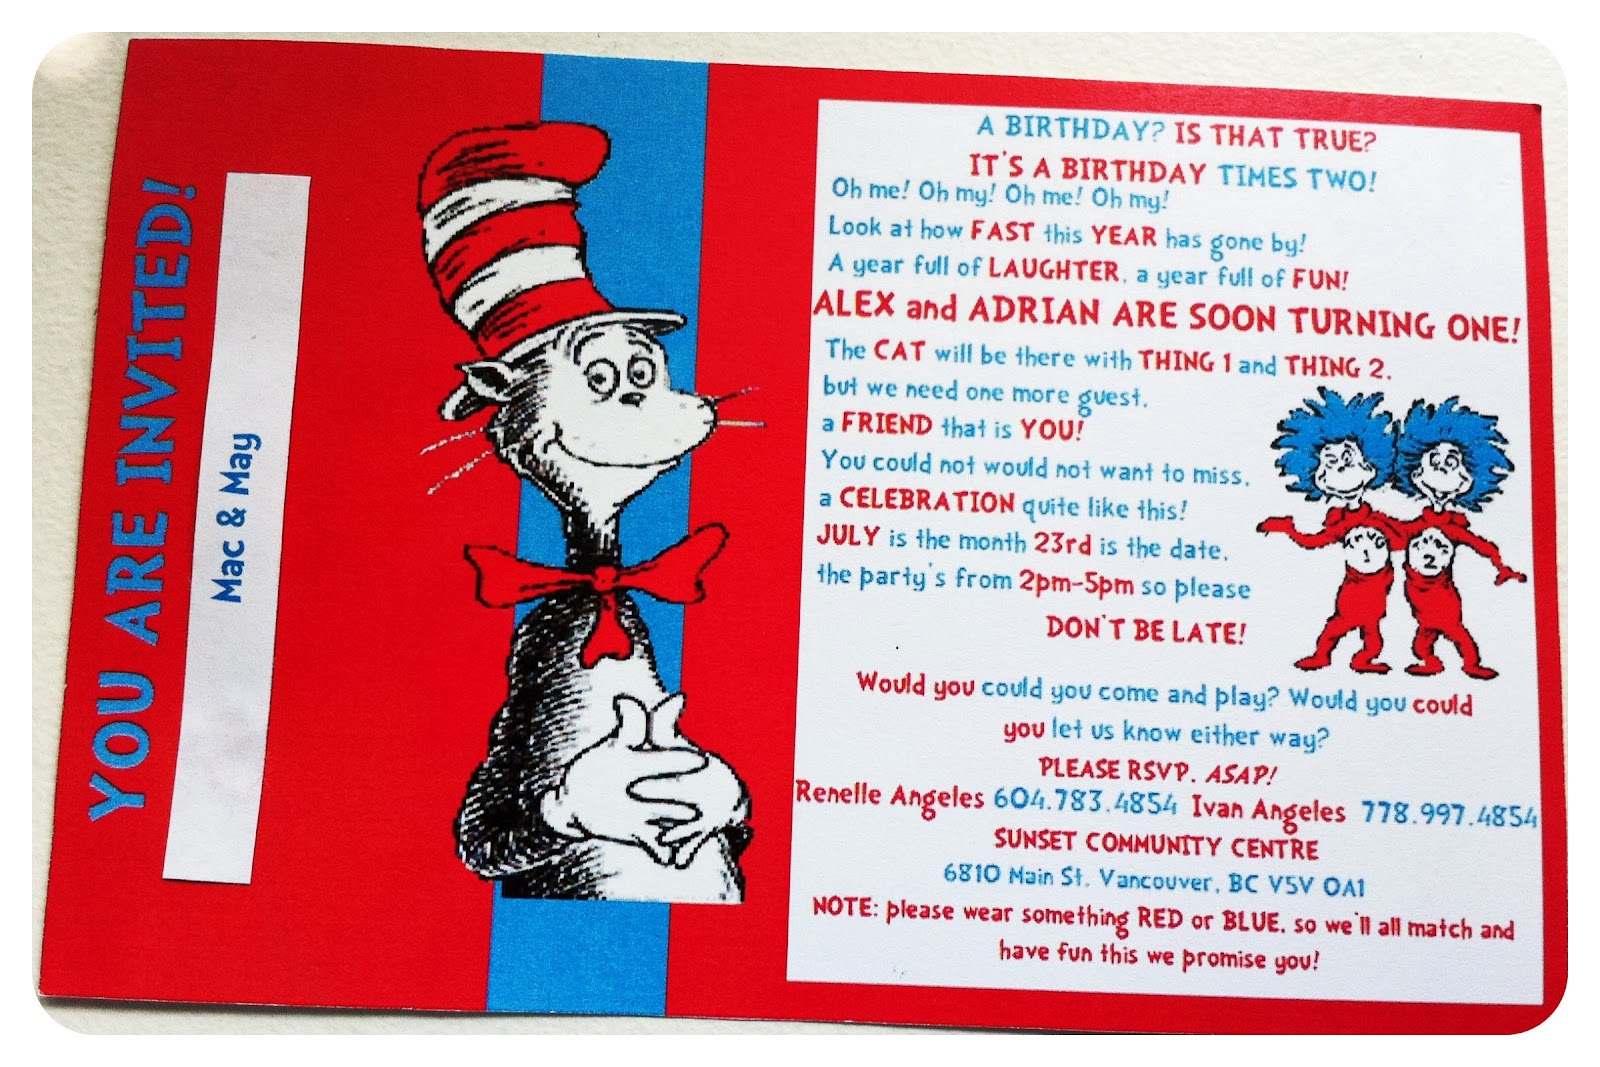 Charmed by Sweets: A Dr. Seuss Birthday Celebration